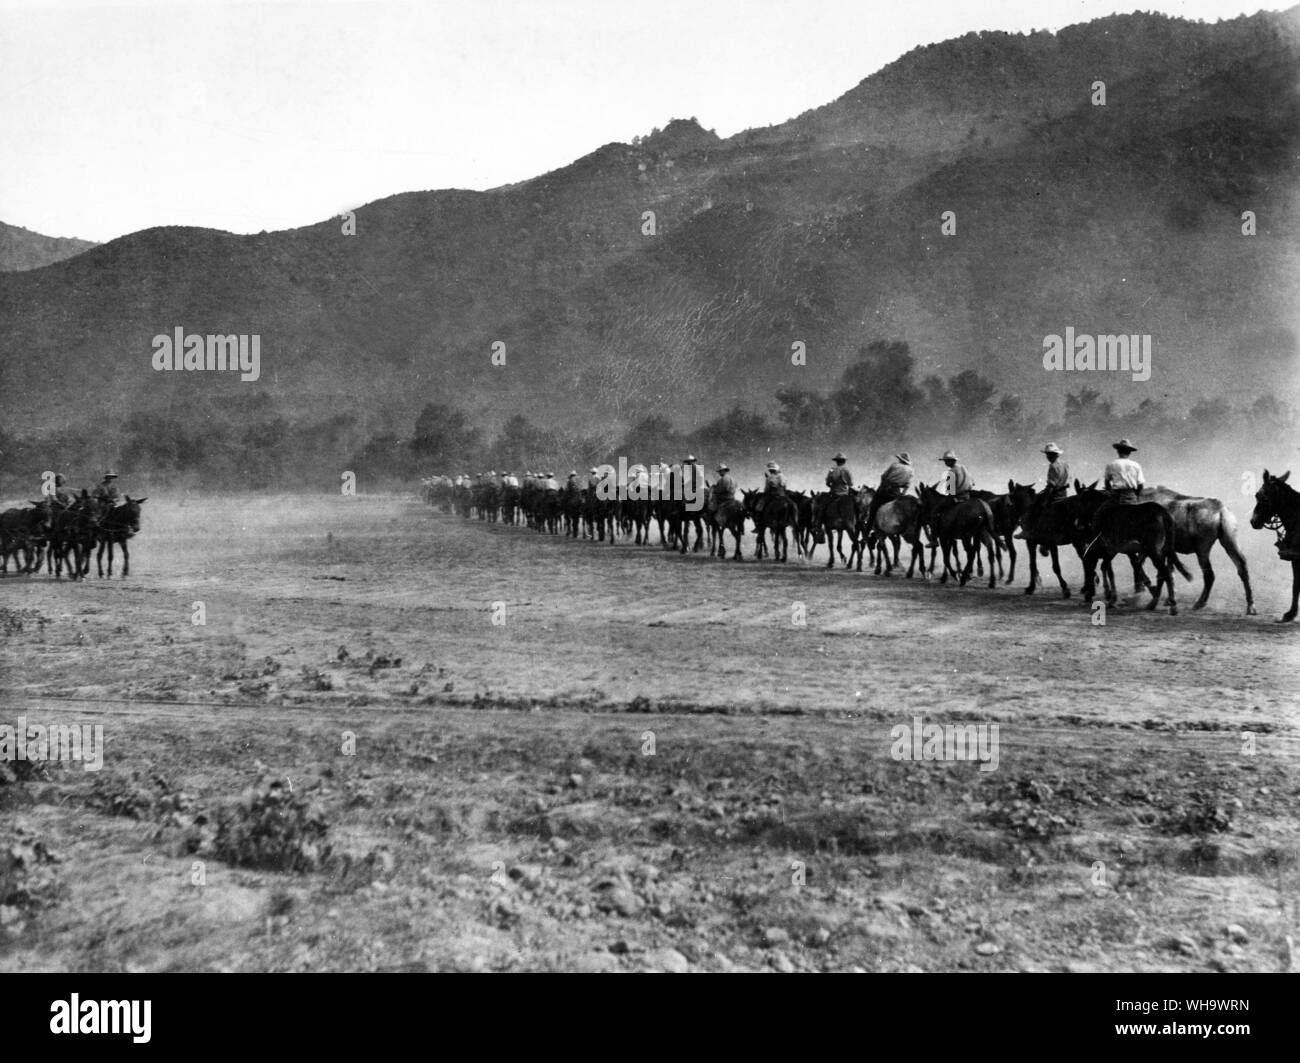 WW1/ The Balkans. Taking mules to water, near Stavros, July 1916. Stock Photo